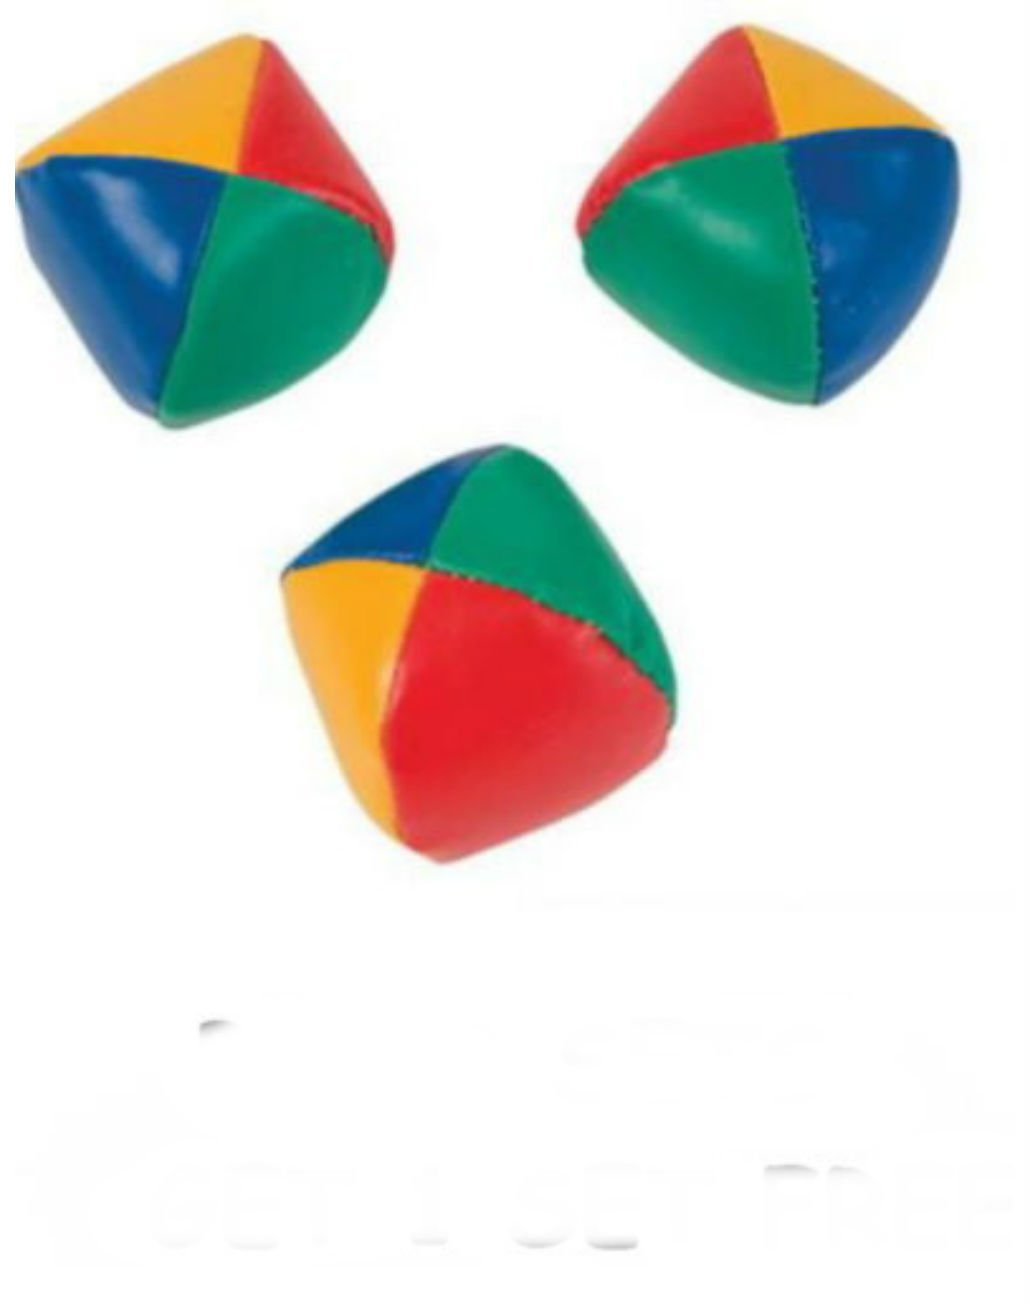 SET OF 3 LEARN TO JUGGLE BALLS JUGGLING BALL WITH INSTRUCTIONS 2.25'' by Unbranded (Image #1)